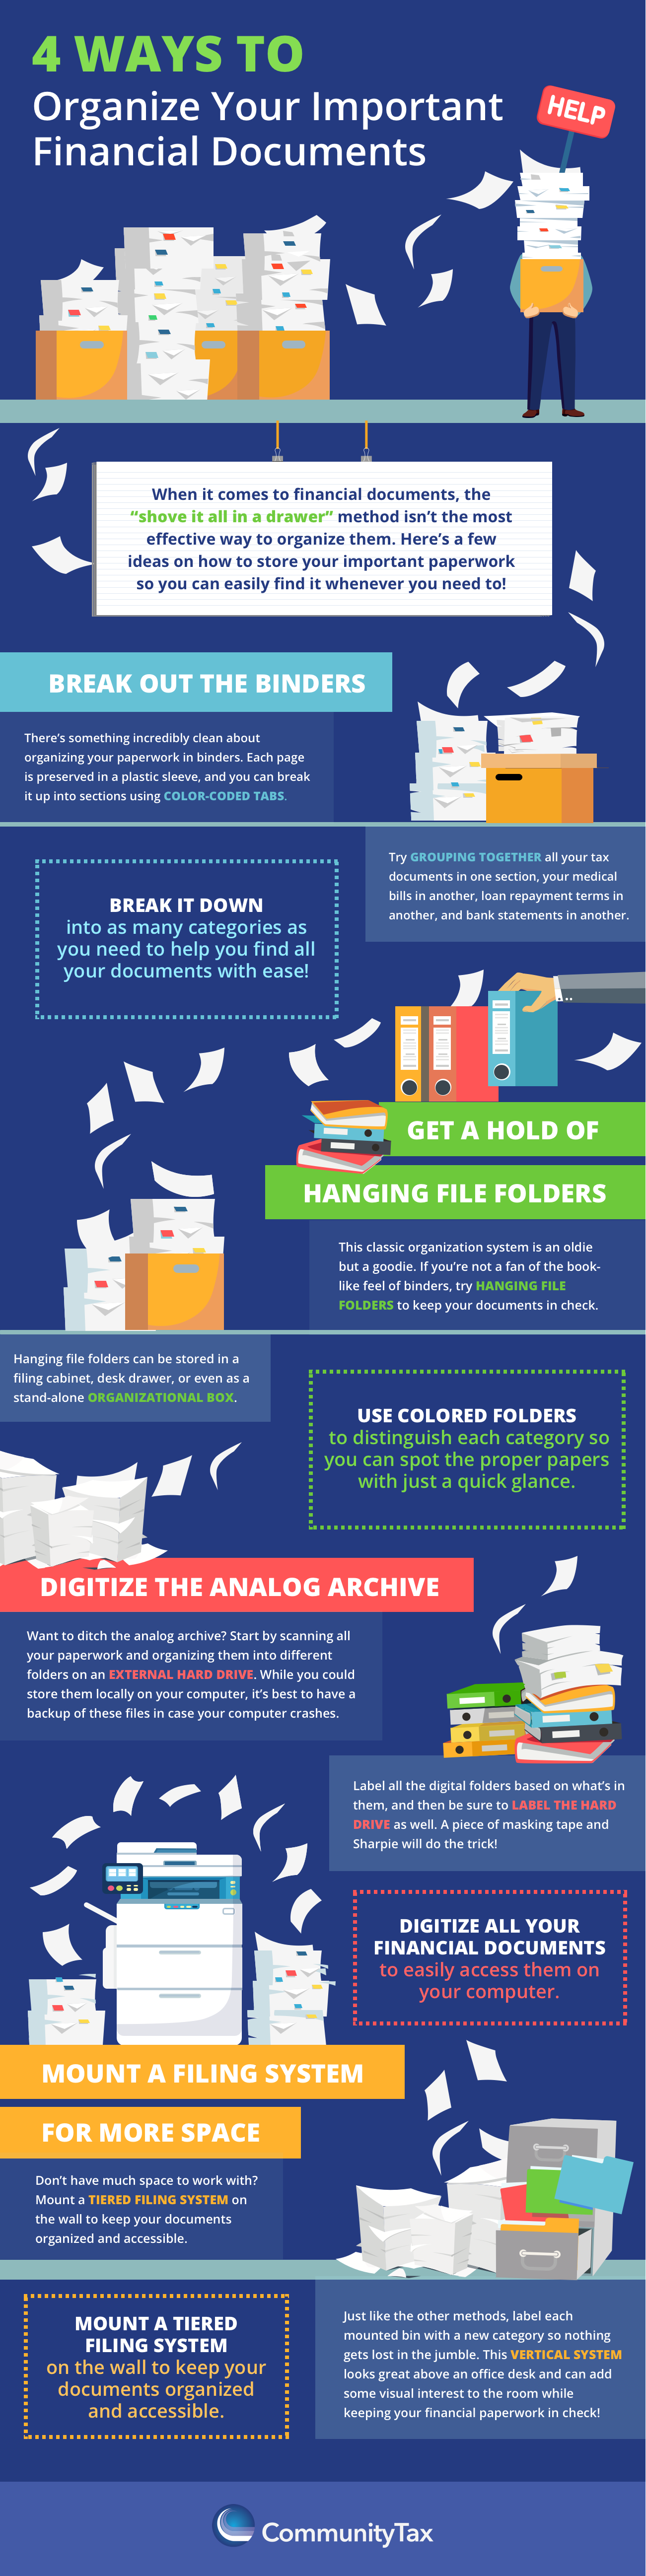 4 Ways to Organize Your Important Financial Documents